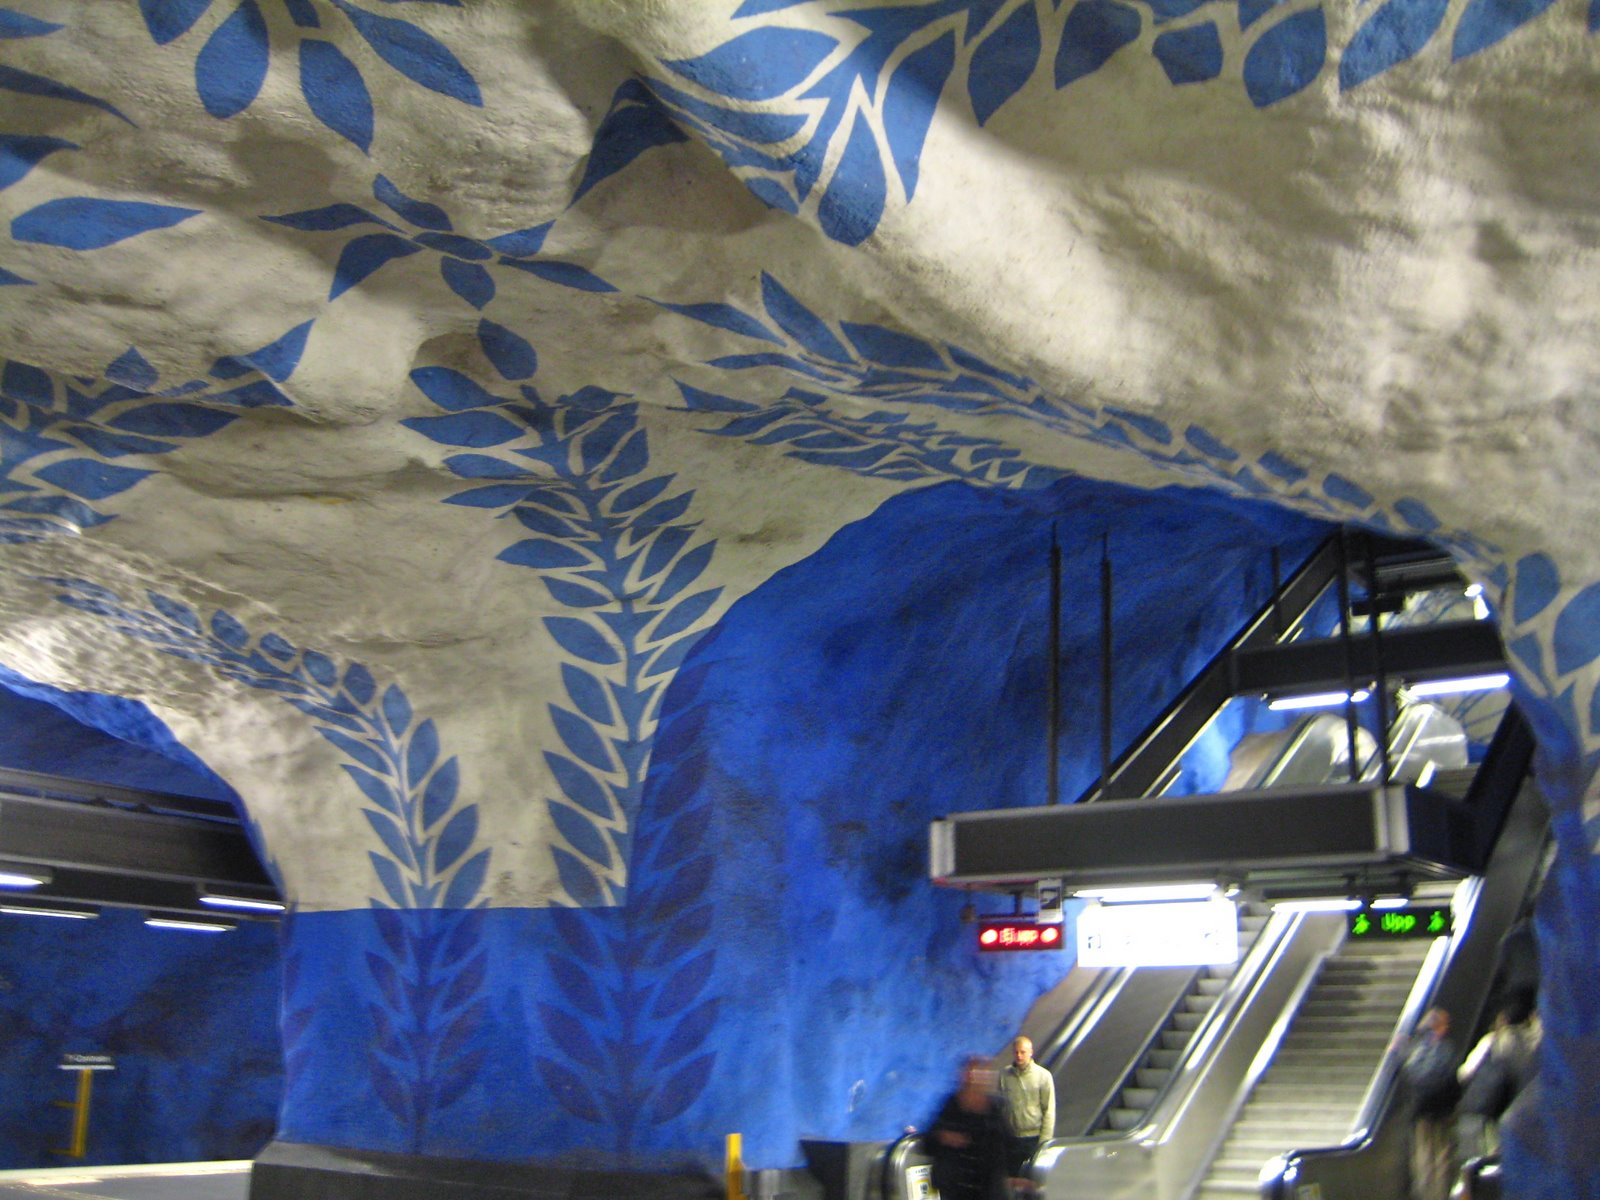 Stockholm blue line station under T-Centralen